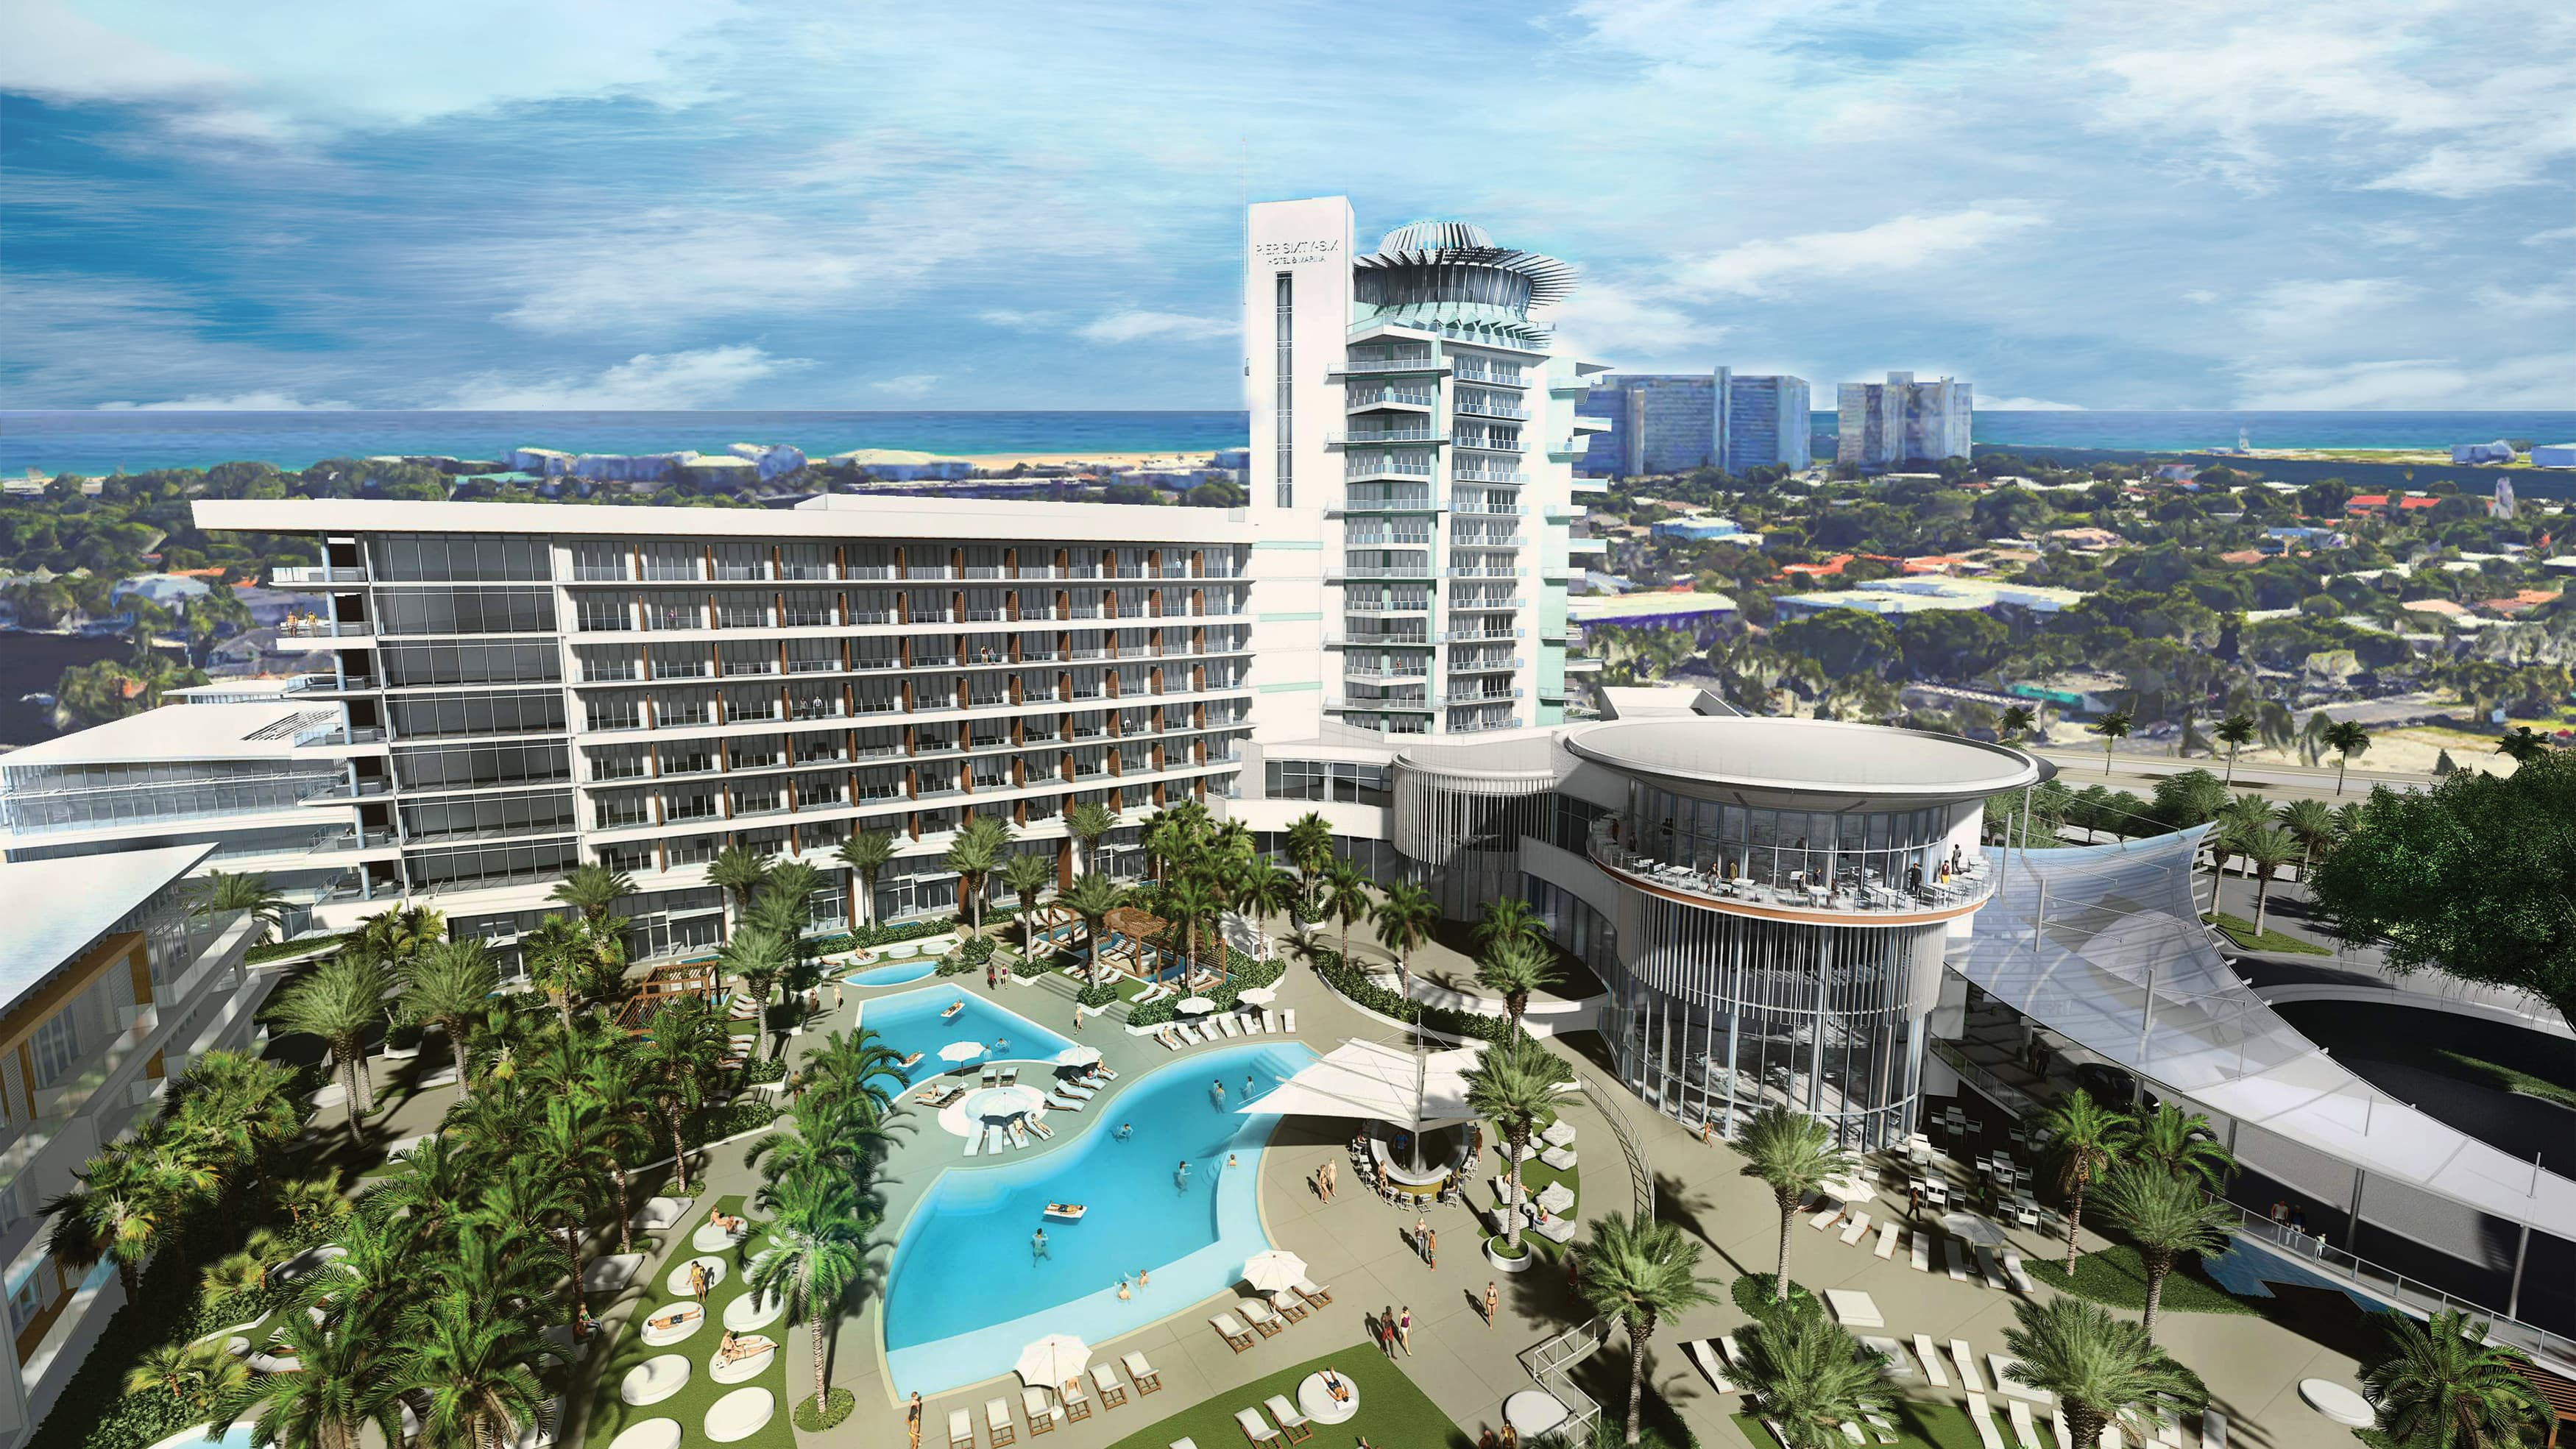 Pier Sixty-Six Hotel & Marina, a mixed-use residential development in Fort Lauderdale, Florida.